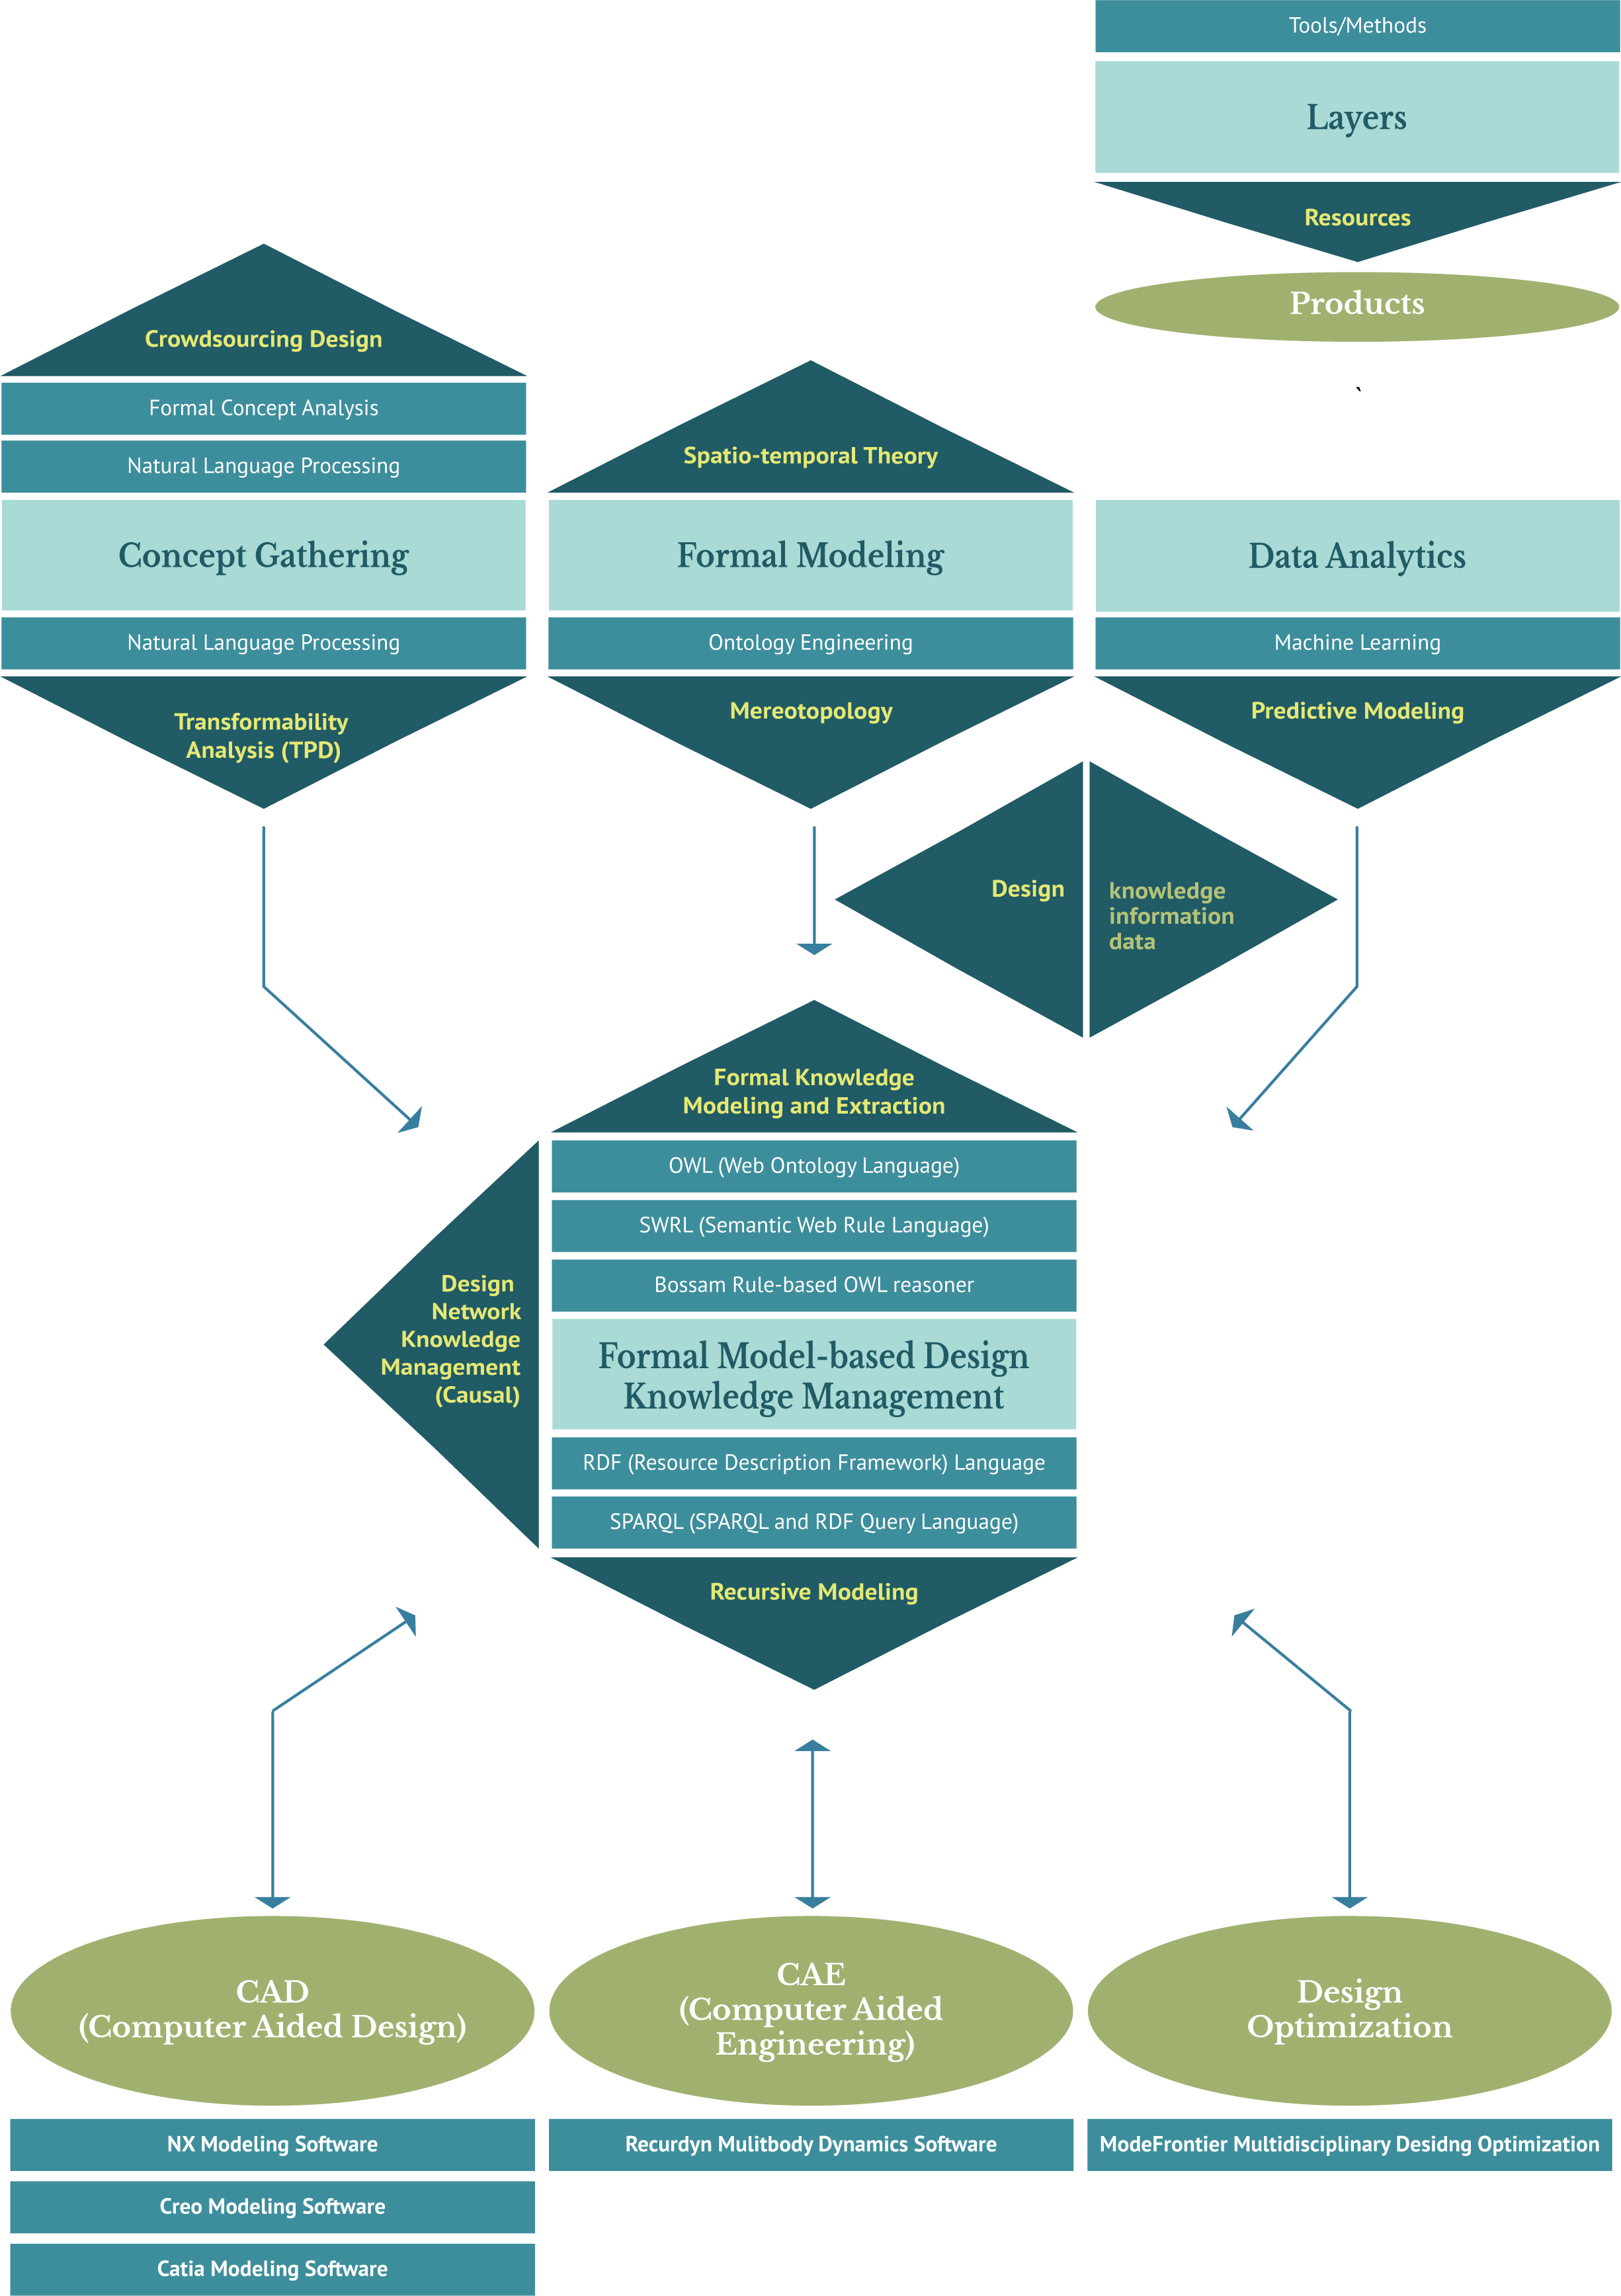 Formal Model-based Design Knowledge Management Infographic